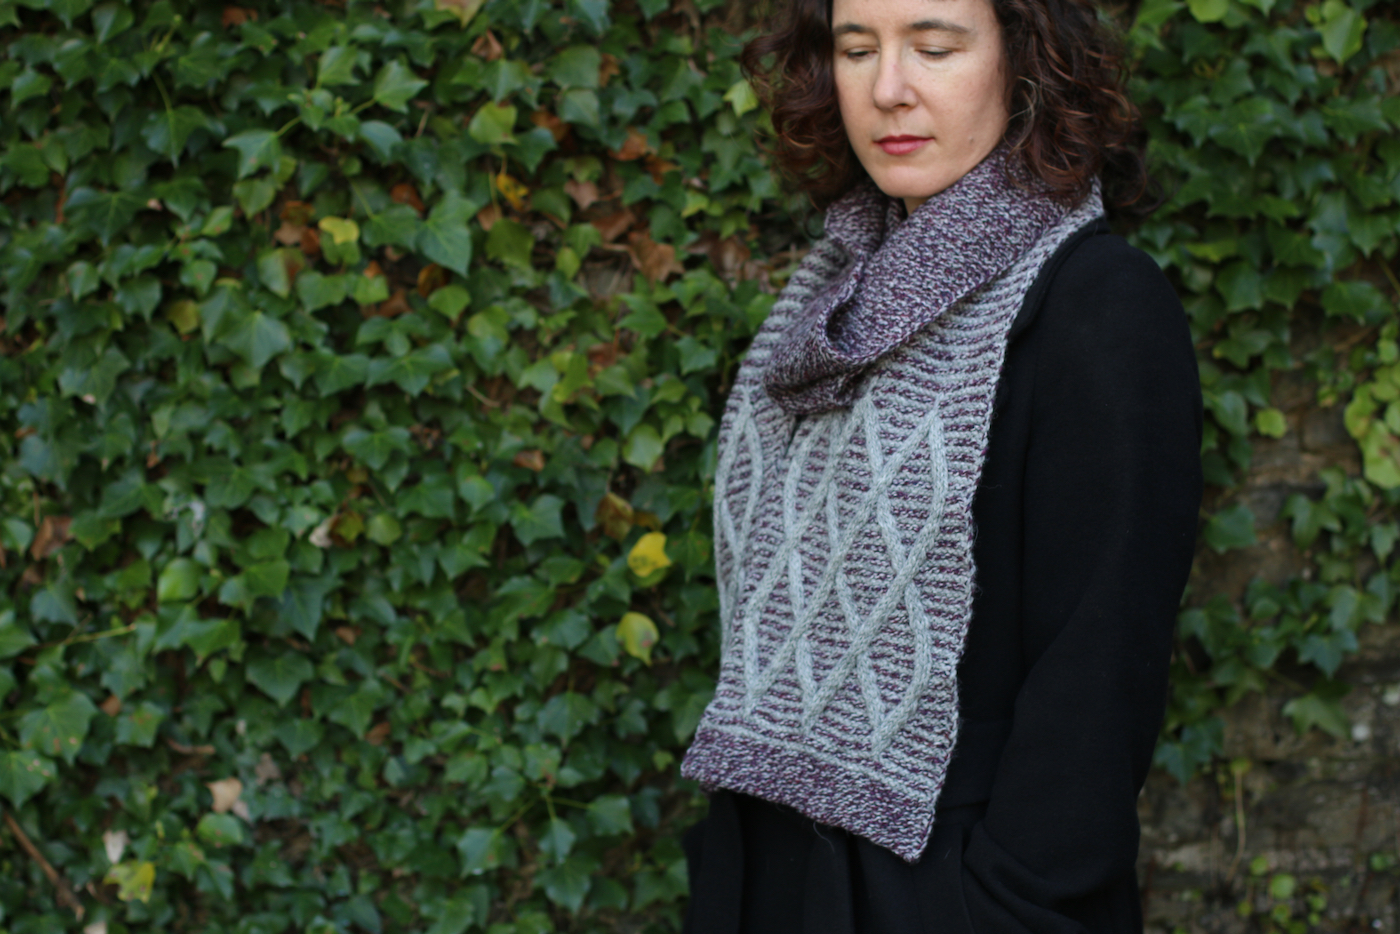 image of woman looking down while wearing cables scarf